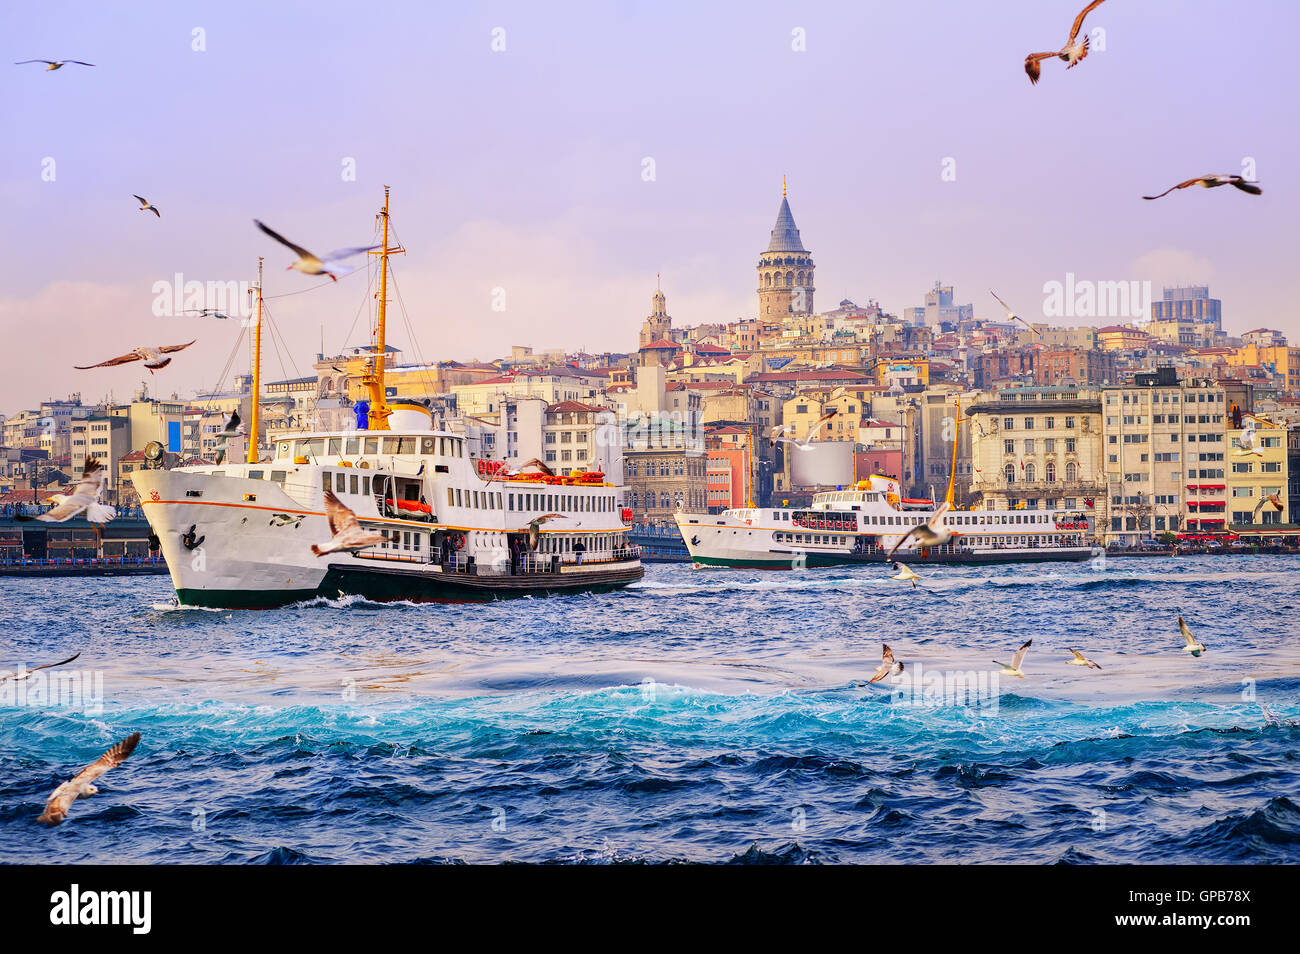 Ships crossing the Golden Horn, Istanbul, Turkey - Stock Image